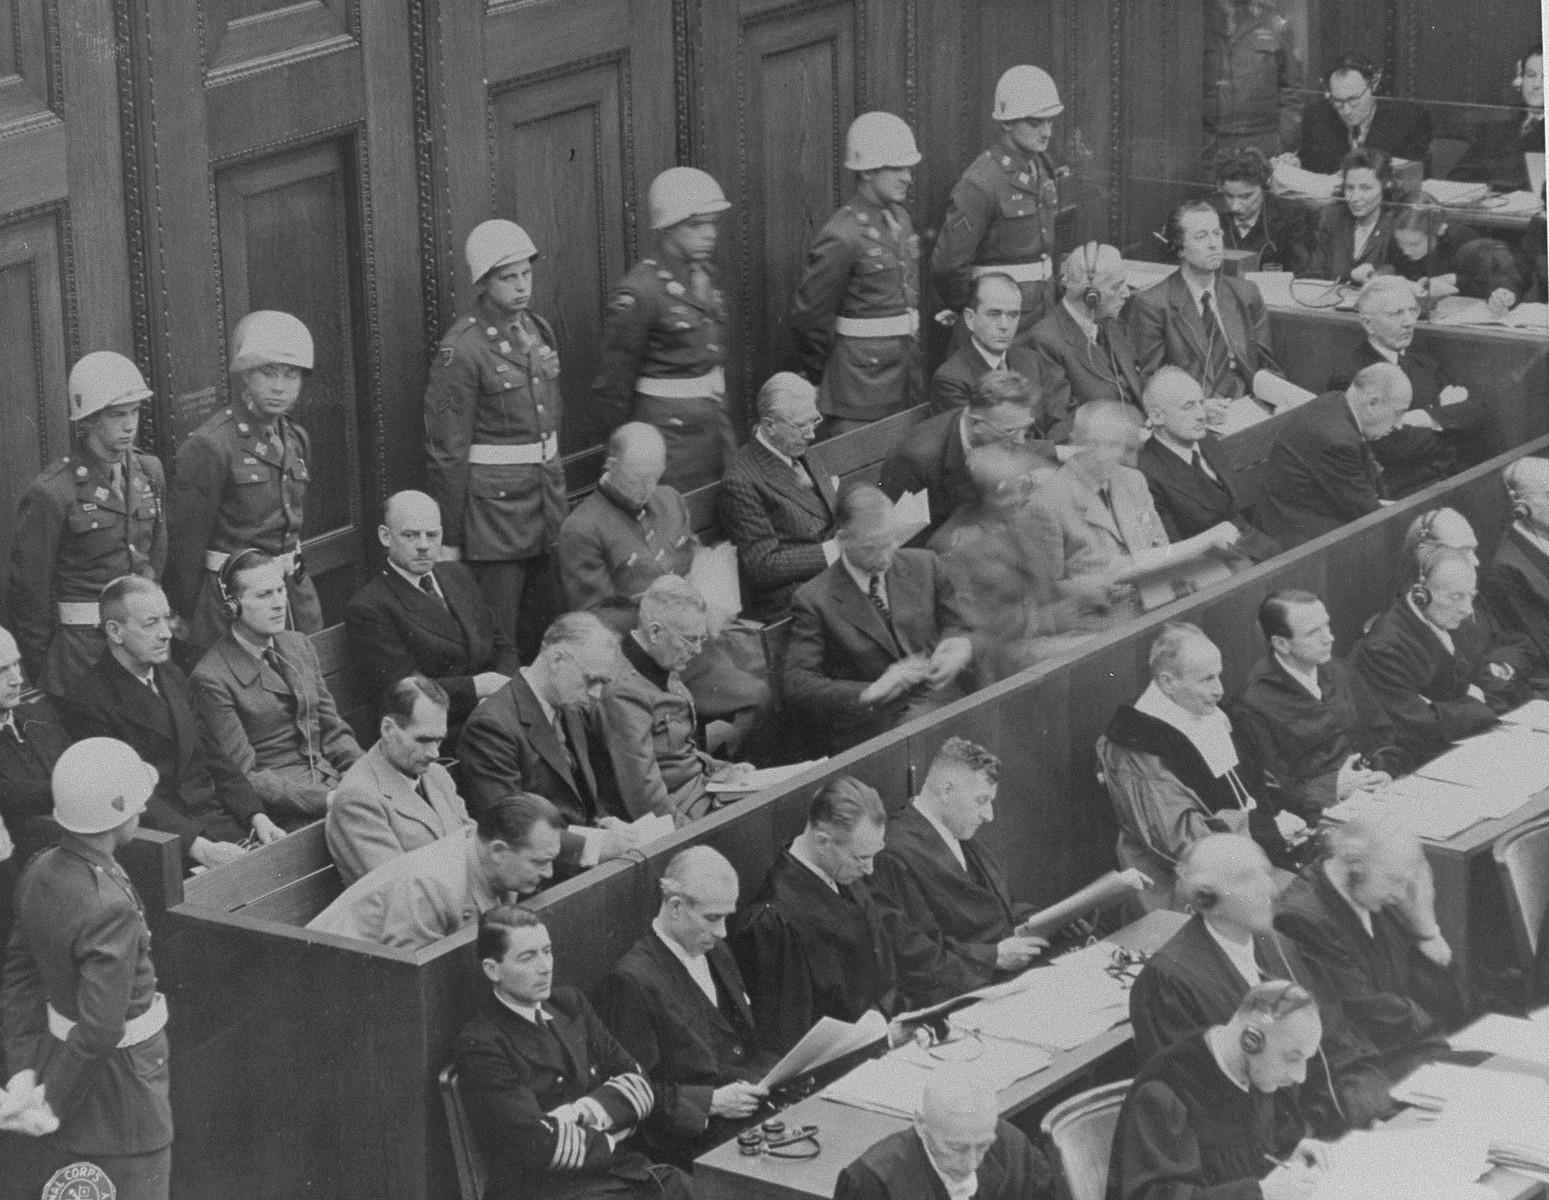 The defendants and their lawyers hear the reading of an indictment on the first day of the International Military Tribunal of war criminals at Nuremberg.